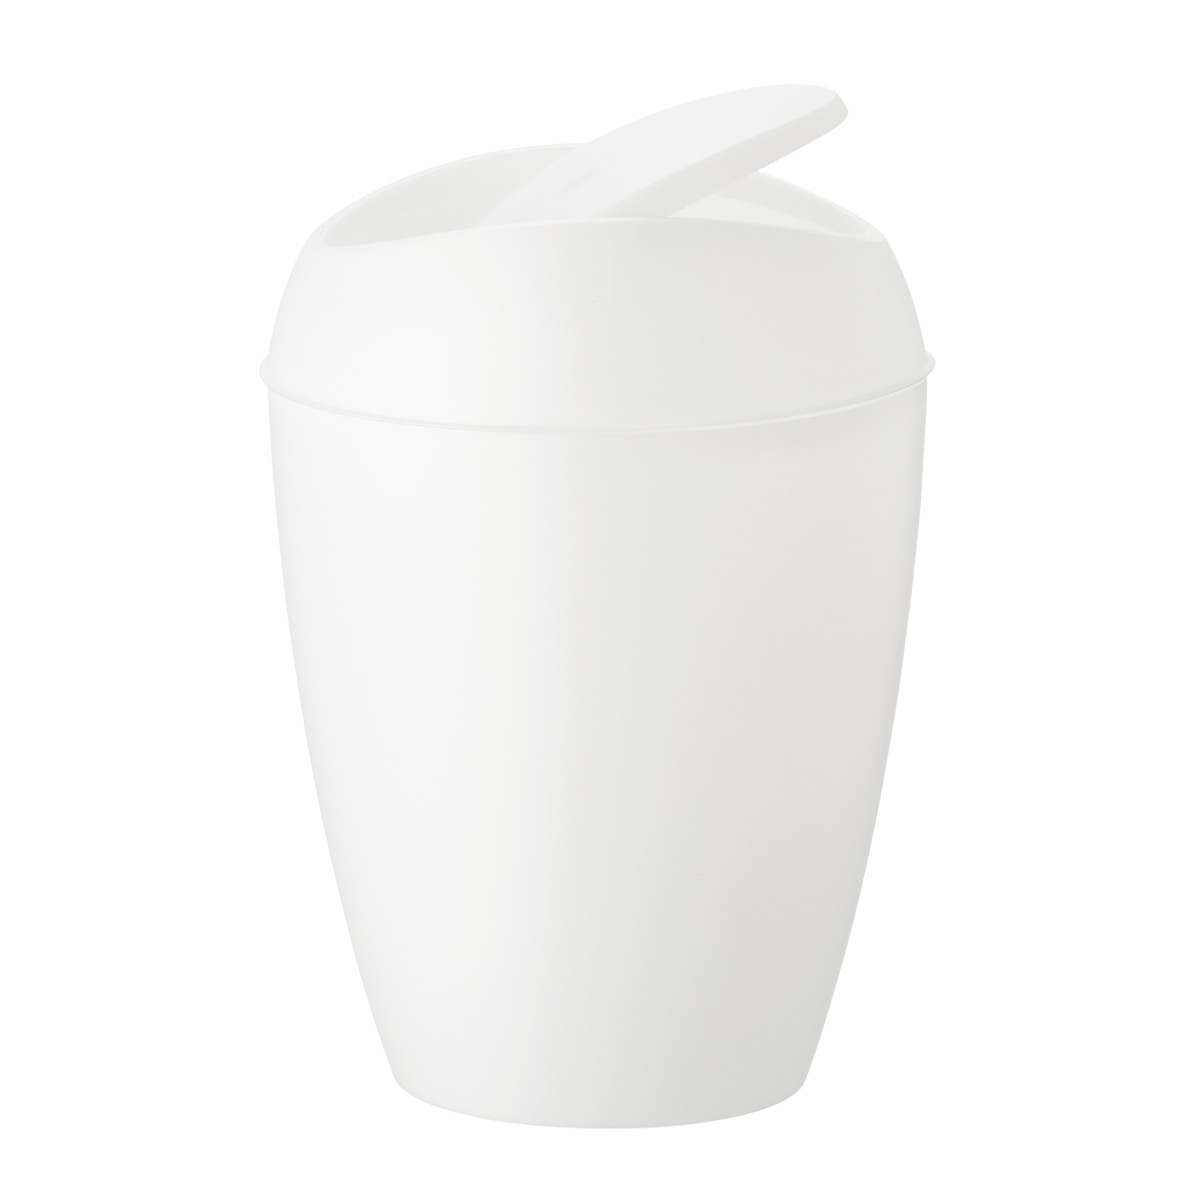 Umbra 2.4 gal/9L Metallic White Twirla Trash Can